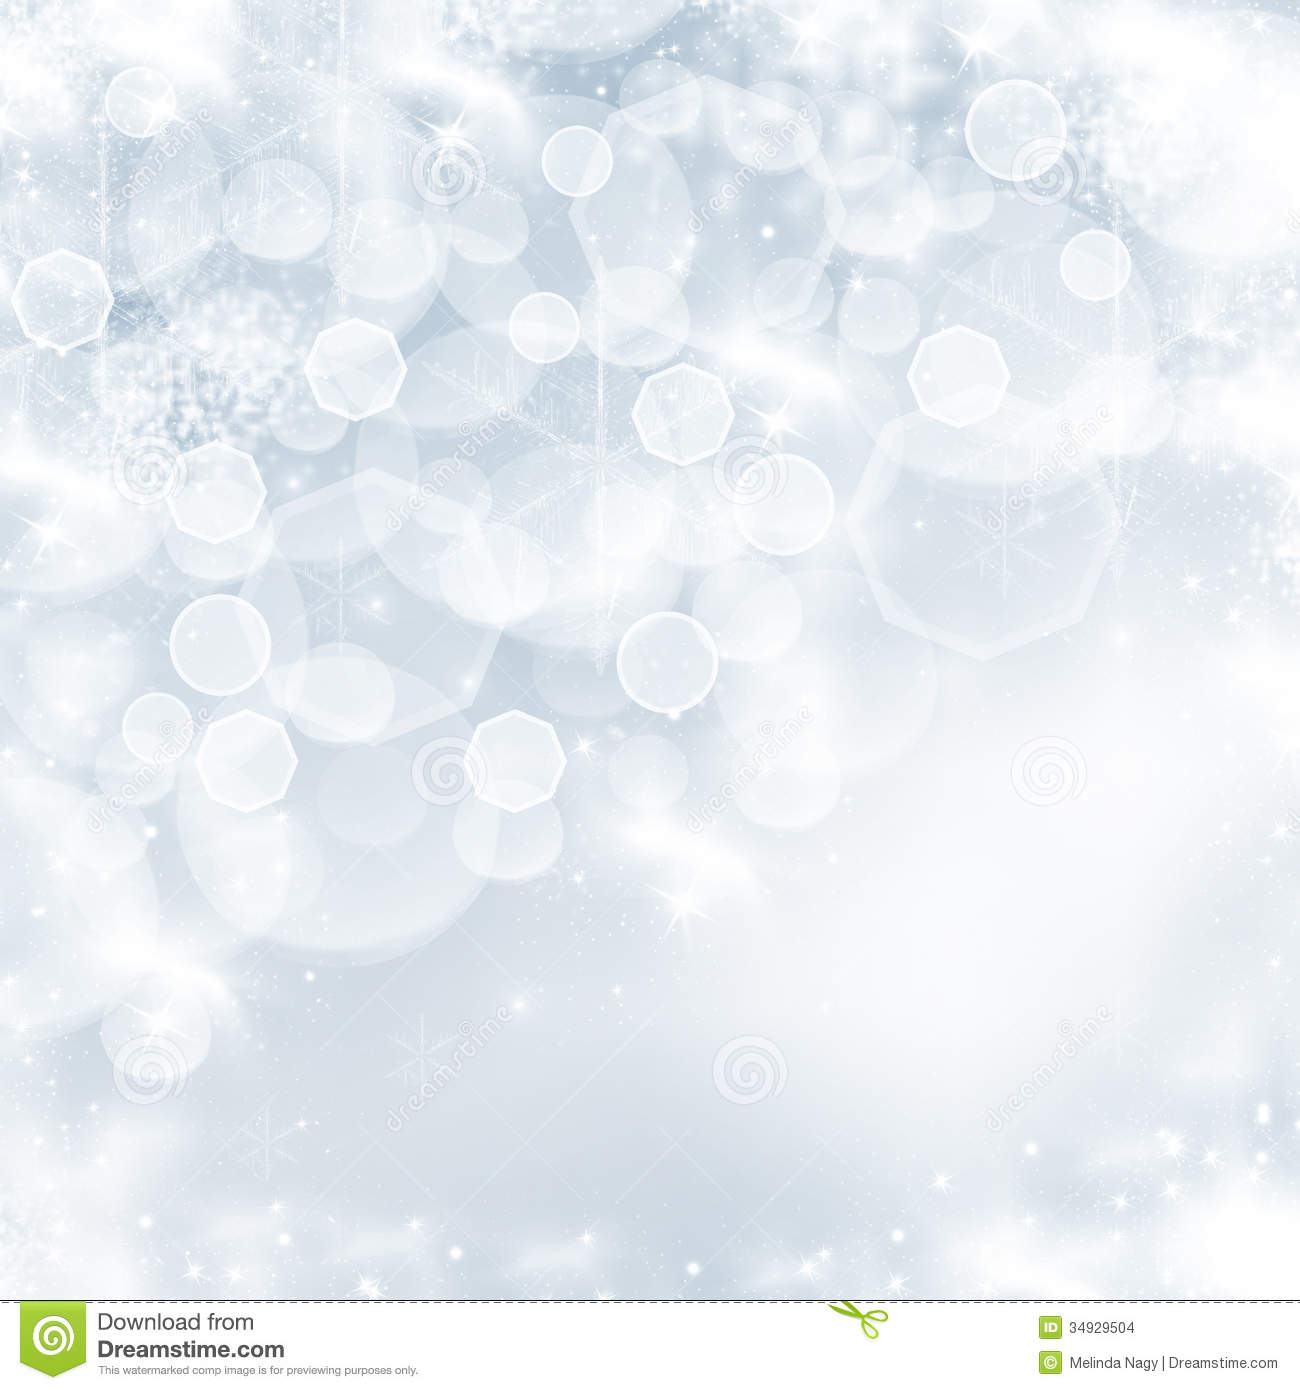 Fall Festival Wallpaper Christmas Background With White Snowflakes Stock